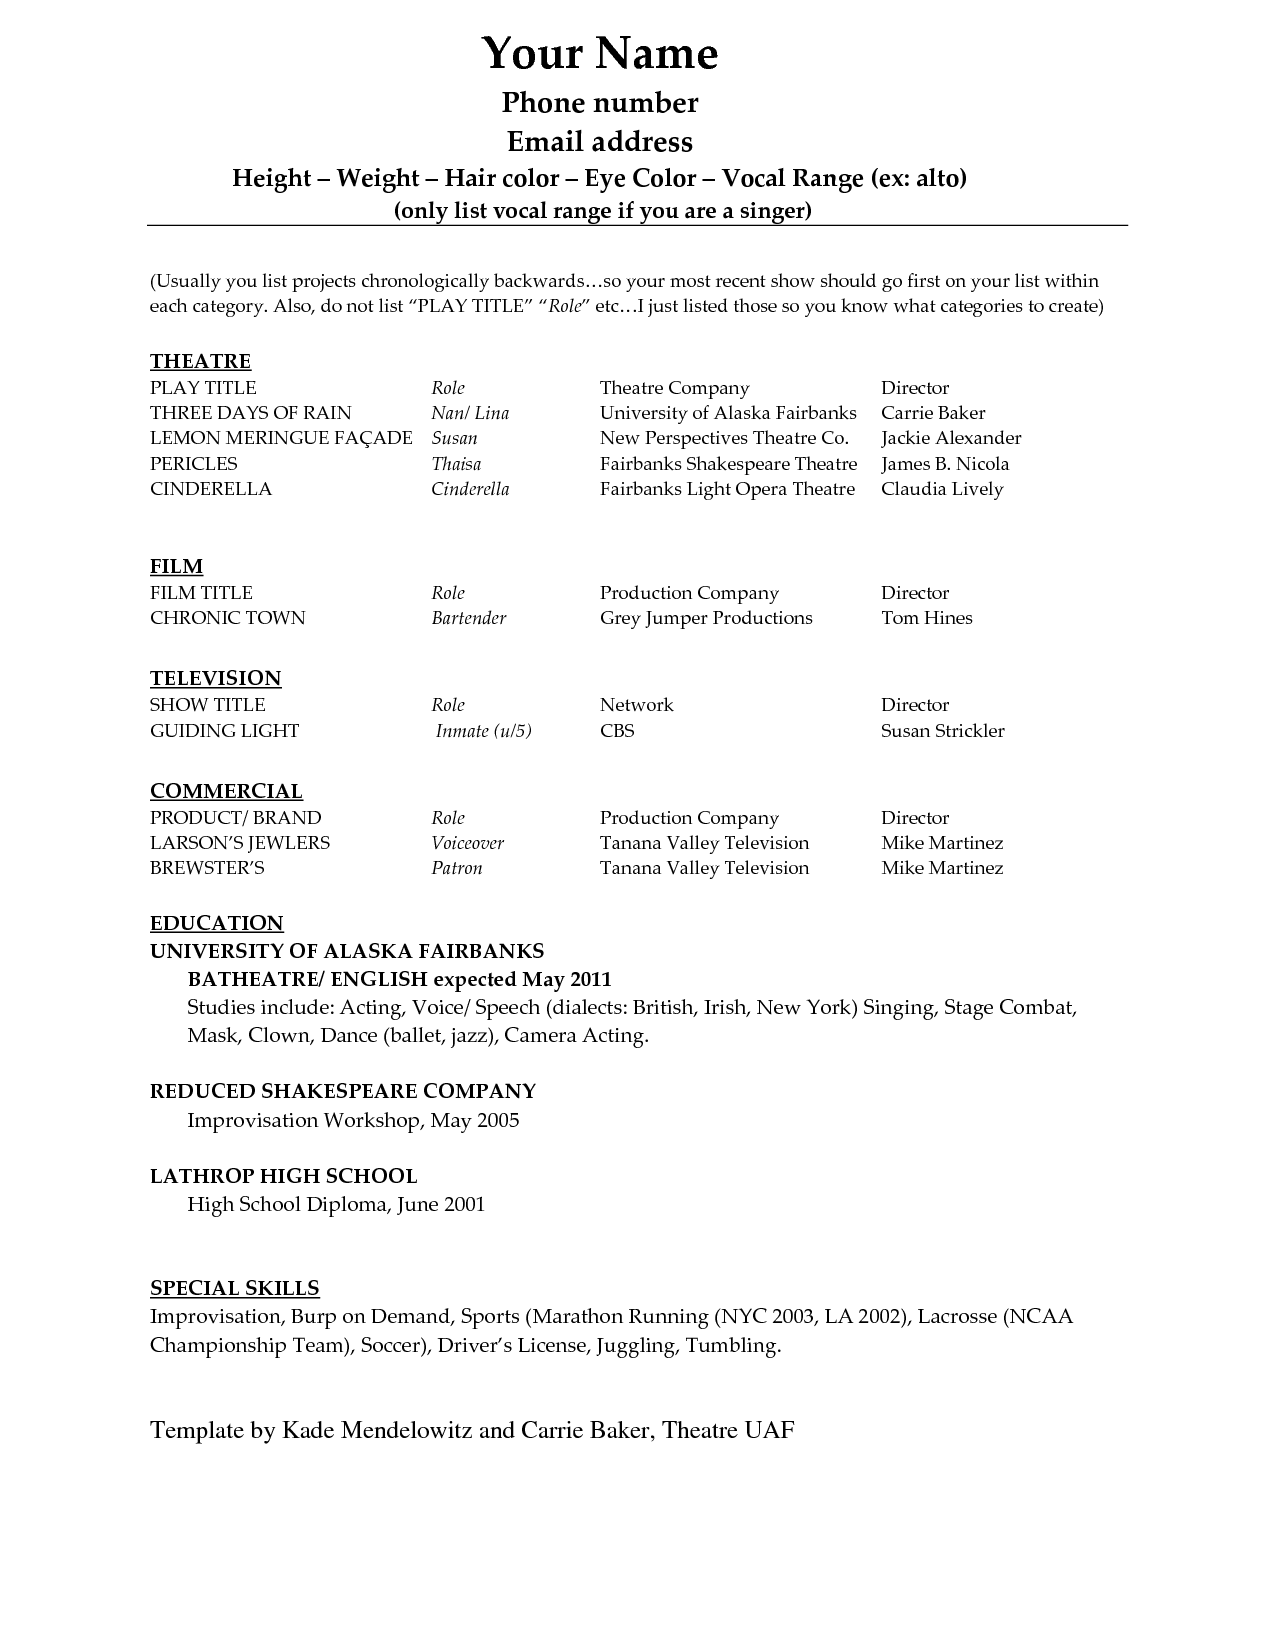 Free Downloadable Resume Templates For Word 2010 Acting Resume Template Download Free  Httpwwwresumecareer